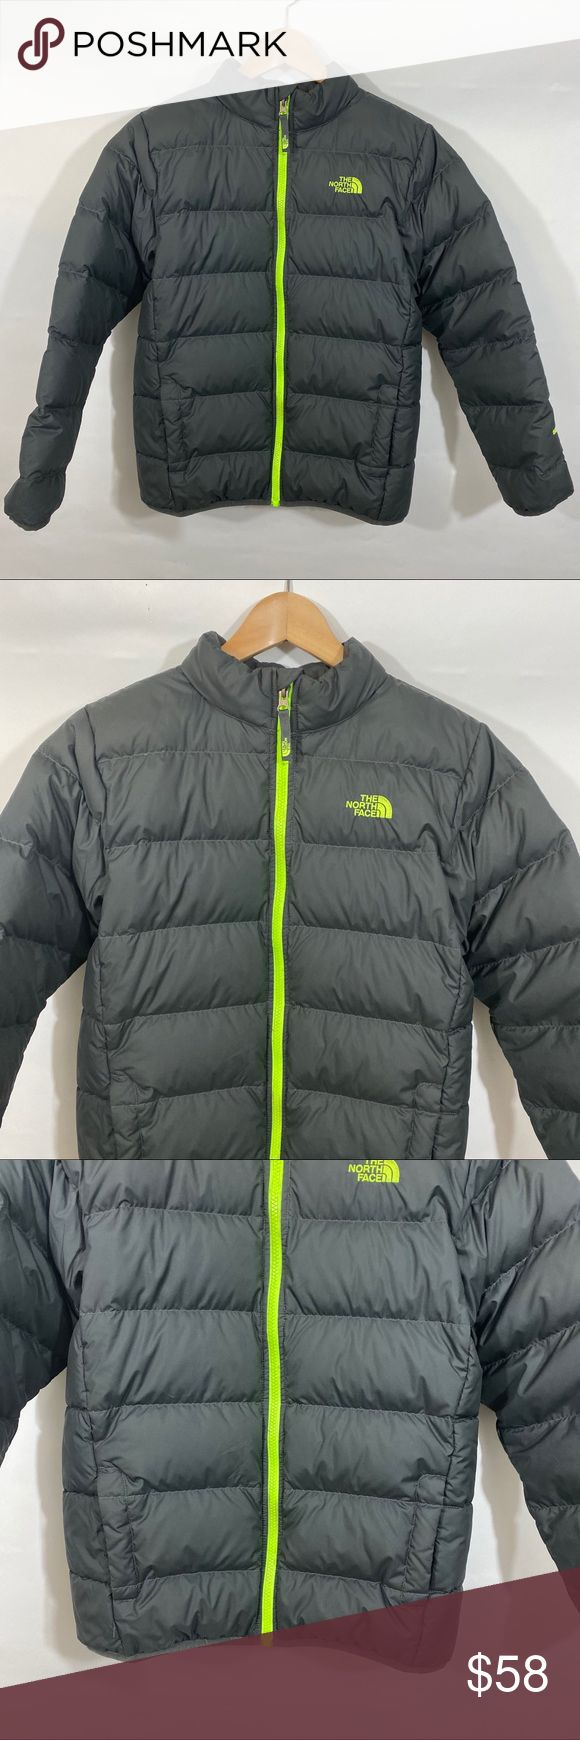 Boys The North Face Puffer Down Jacket Size 14 16 North Face Puffer The North Face Puffer The North Face [ 1740 x 580 Pixel ]